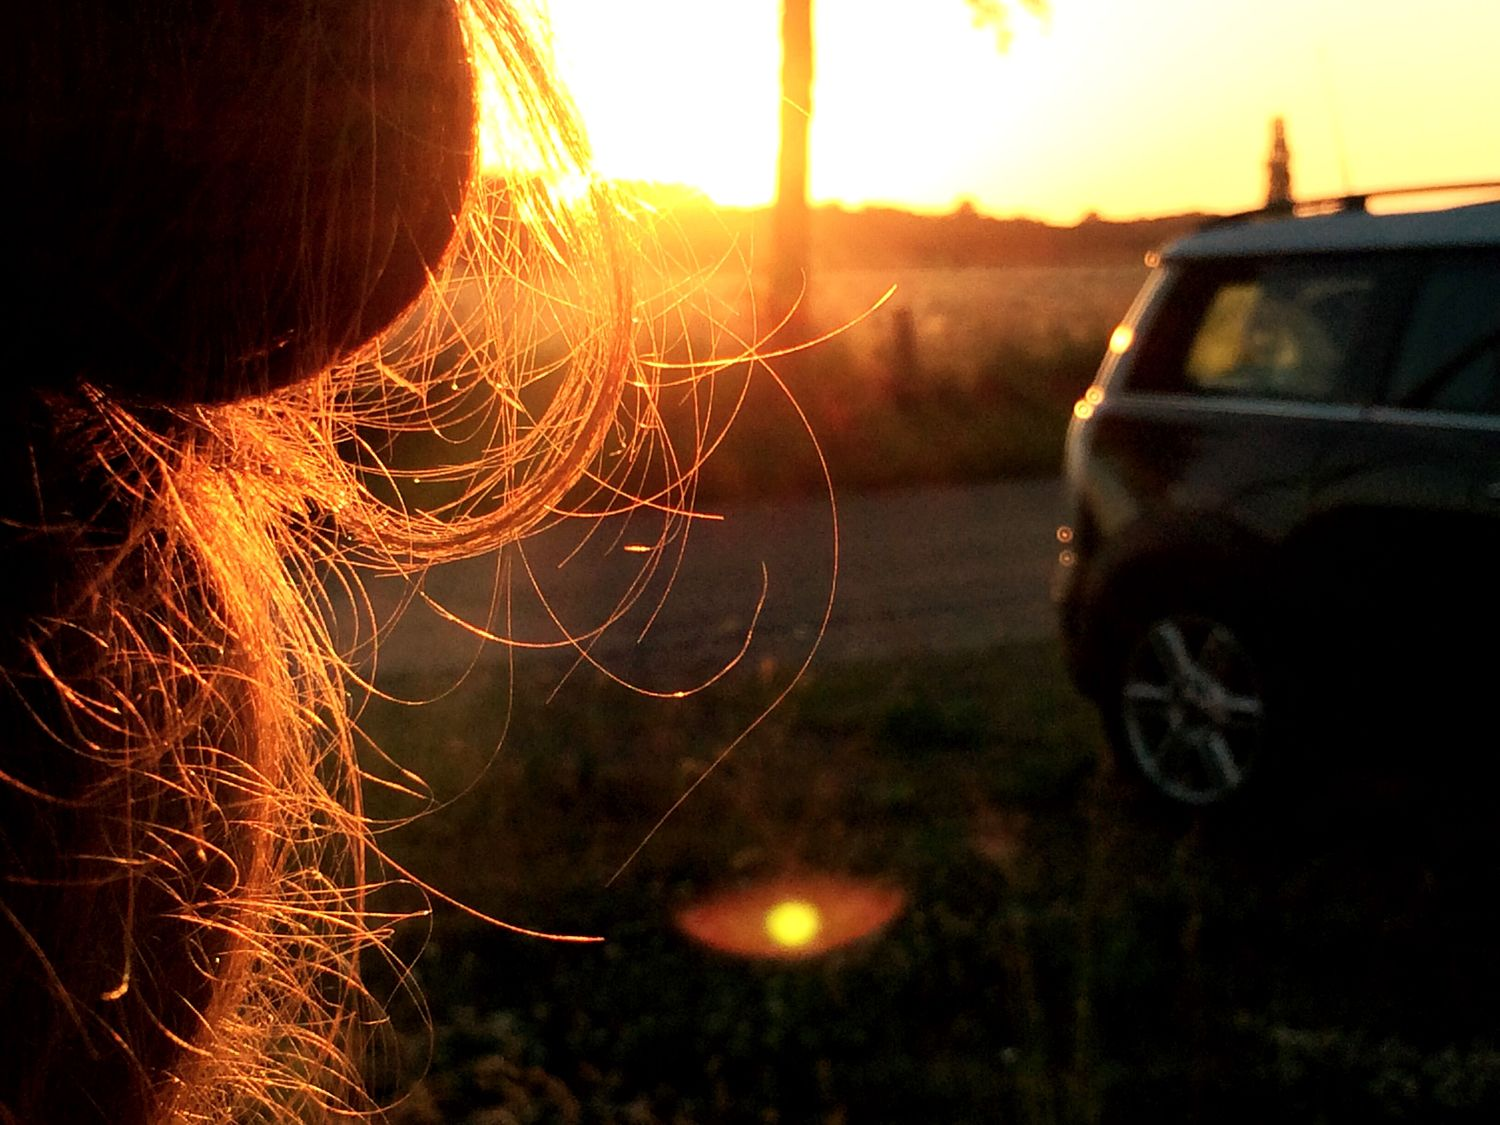 If there's a moment when it's perfect, it will cover me as the sun goes down 🌇👣 Light Sunset Beautiful Hair Nature Enjoying Life Nofilter Dream Summertime OpenEdit